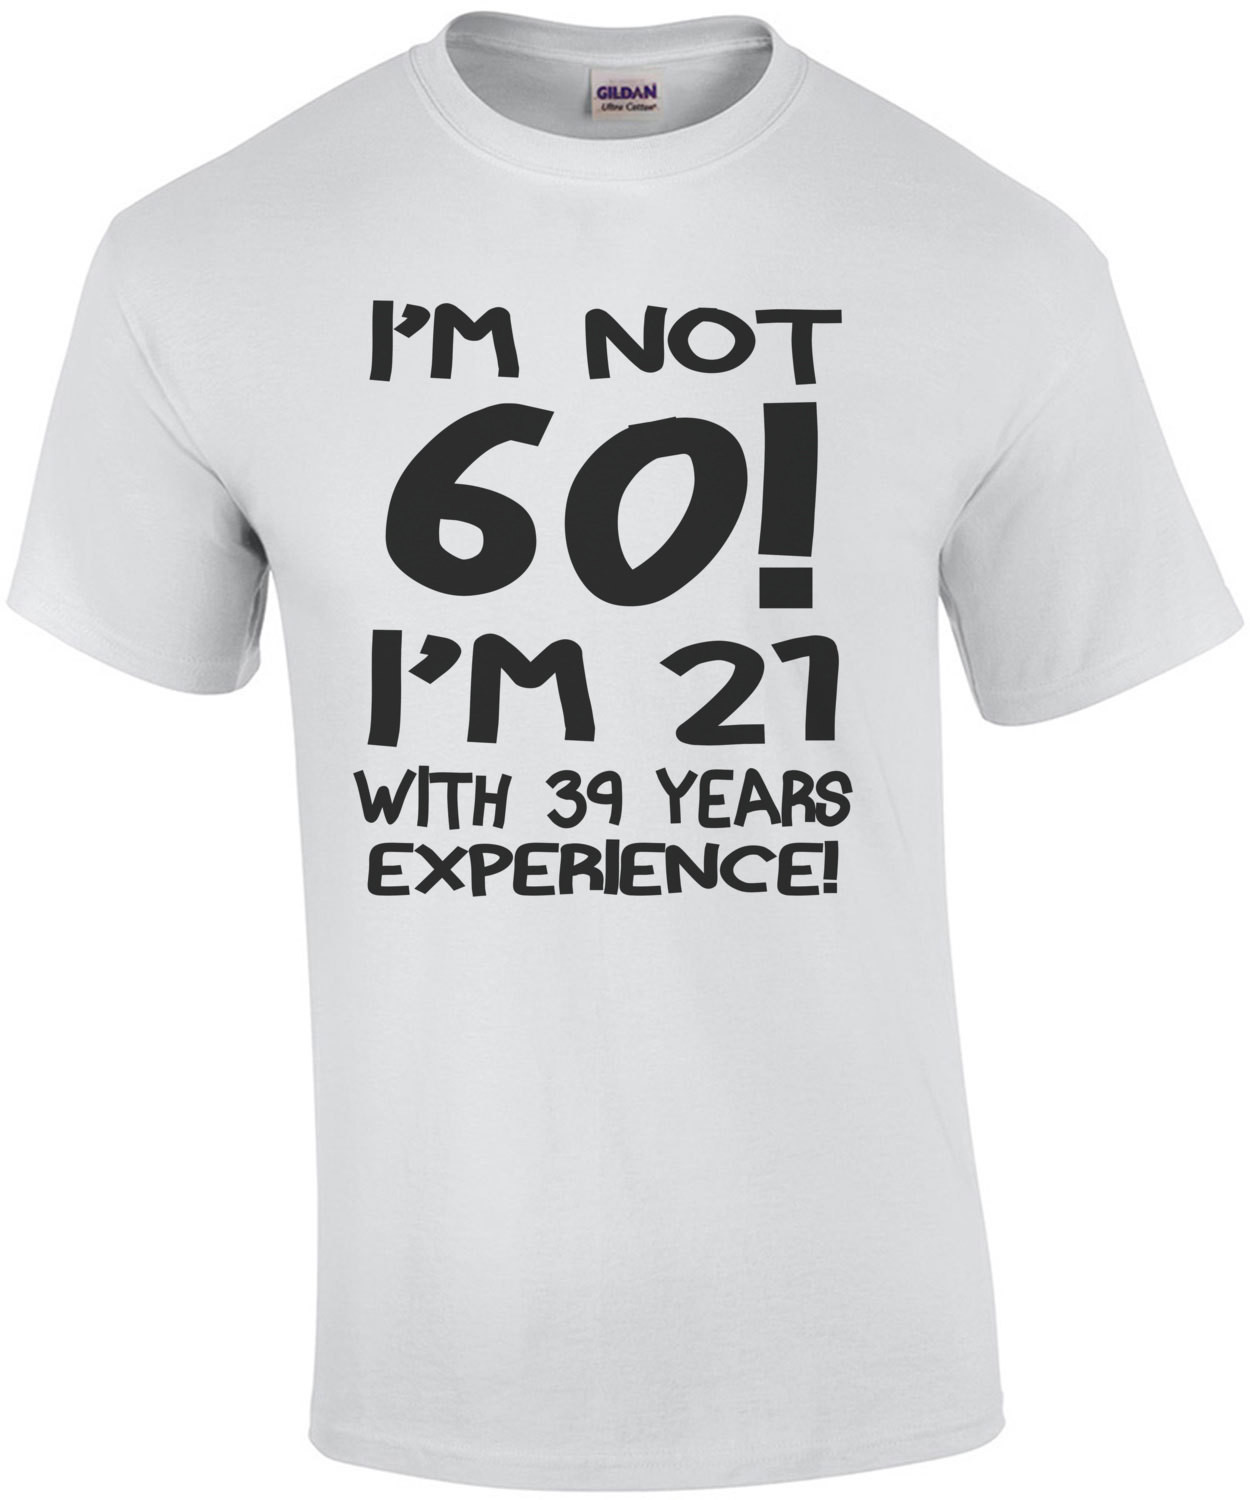 I'm Not 60 I'm 21 With 39 Years Experience T-Shirt